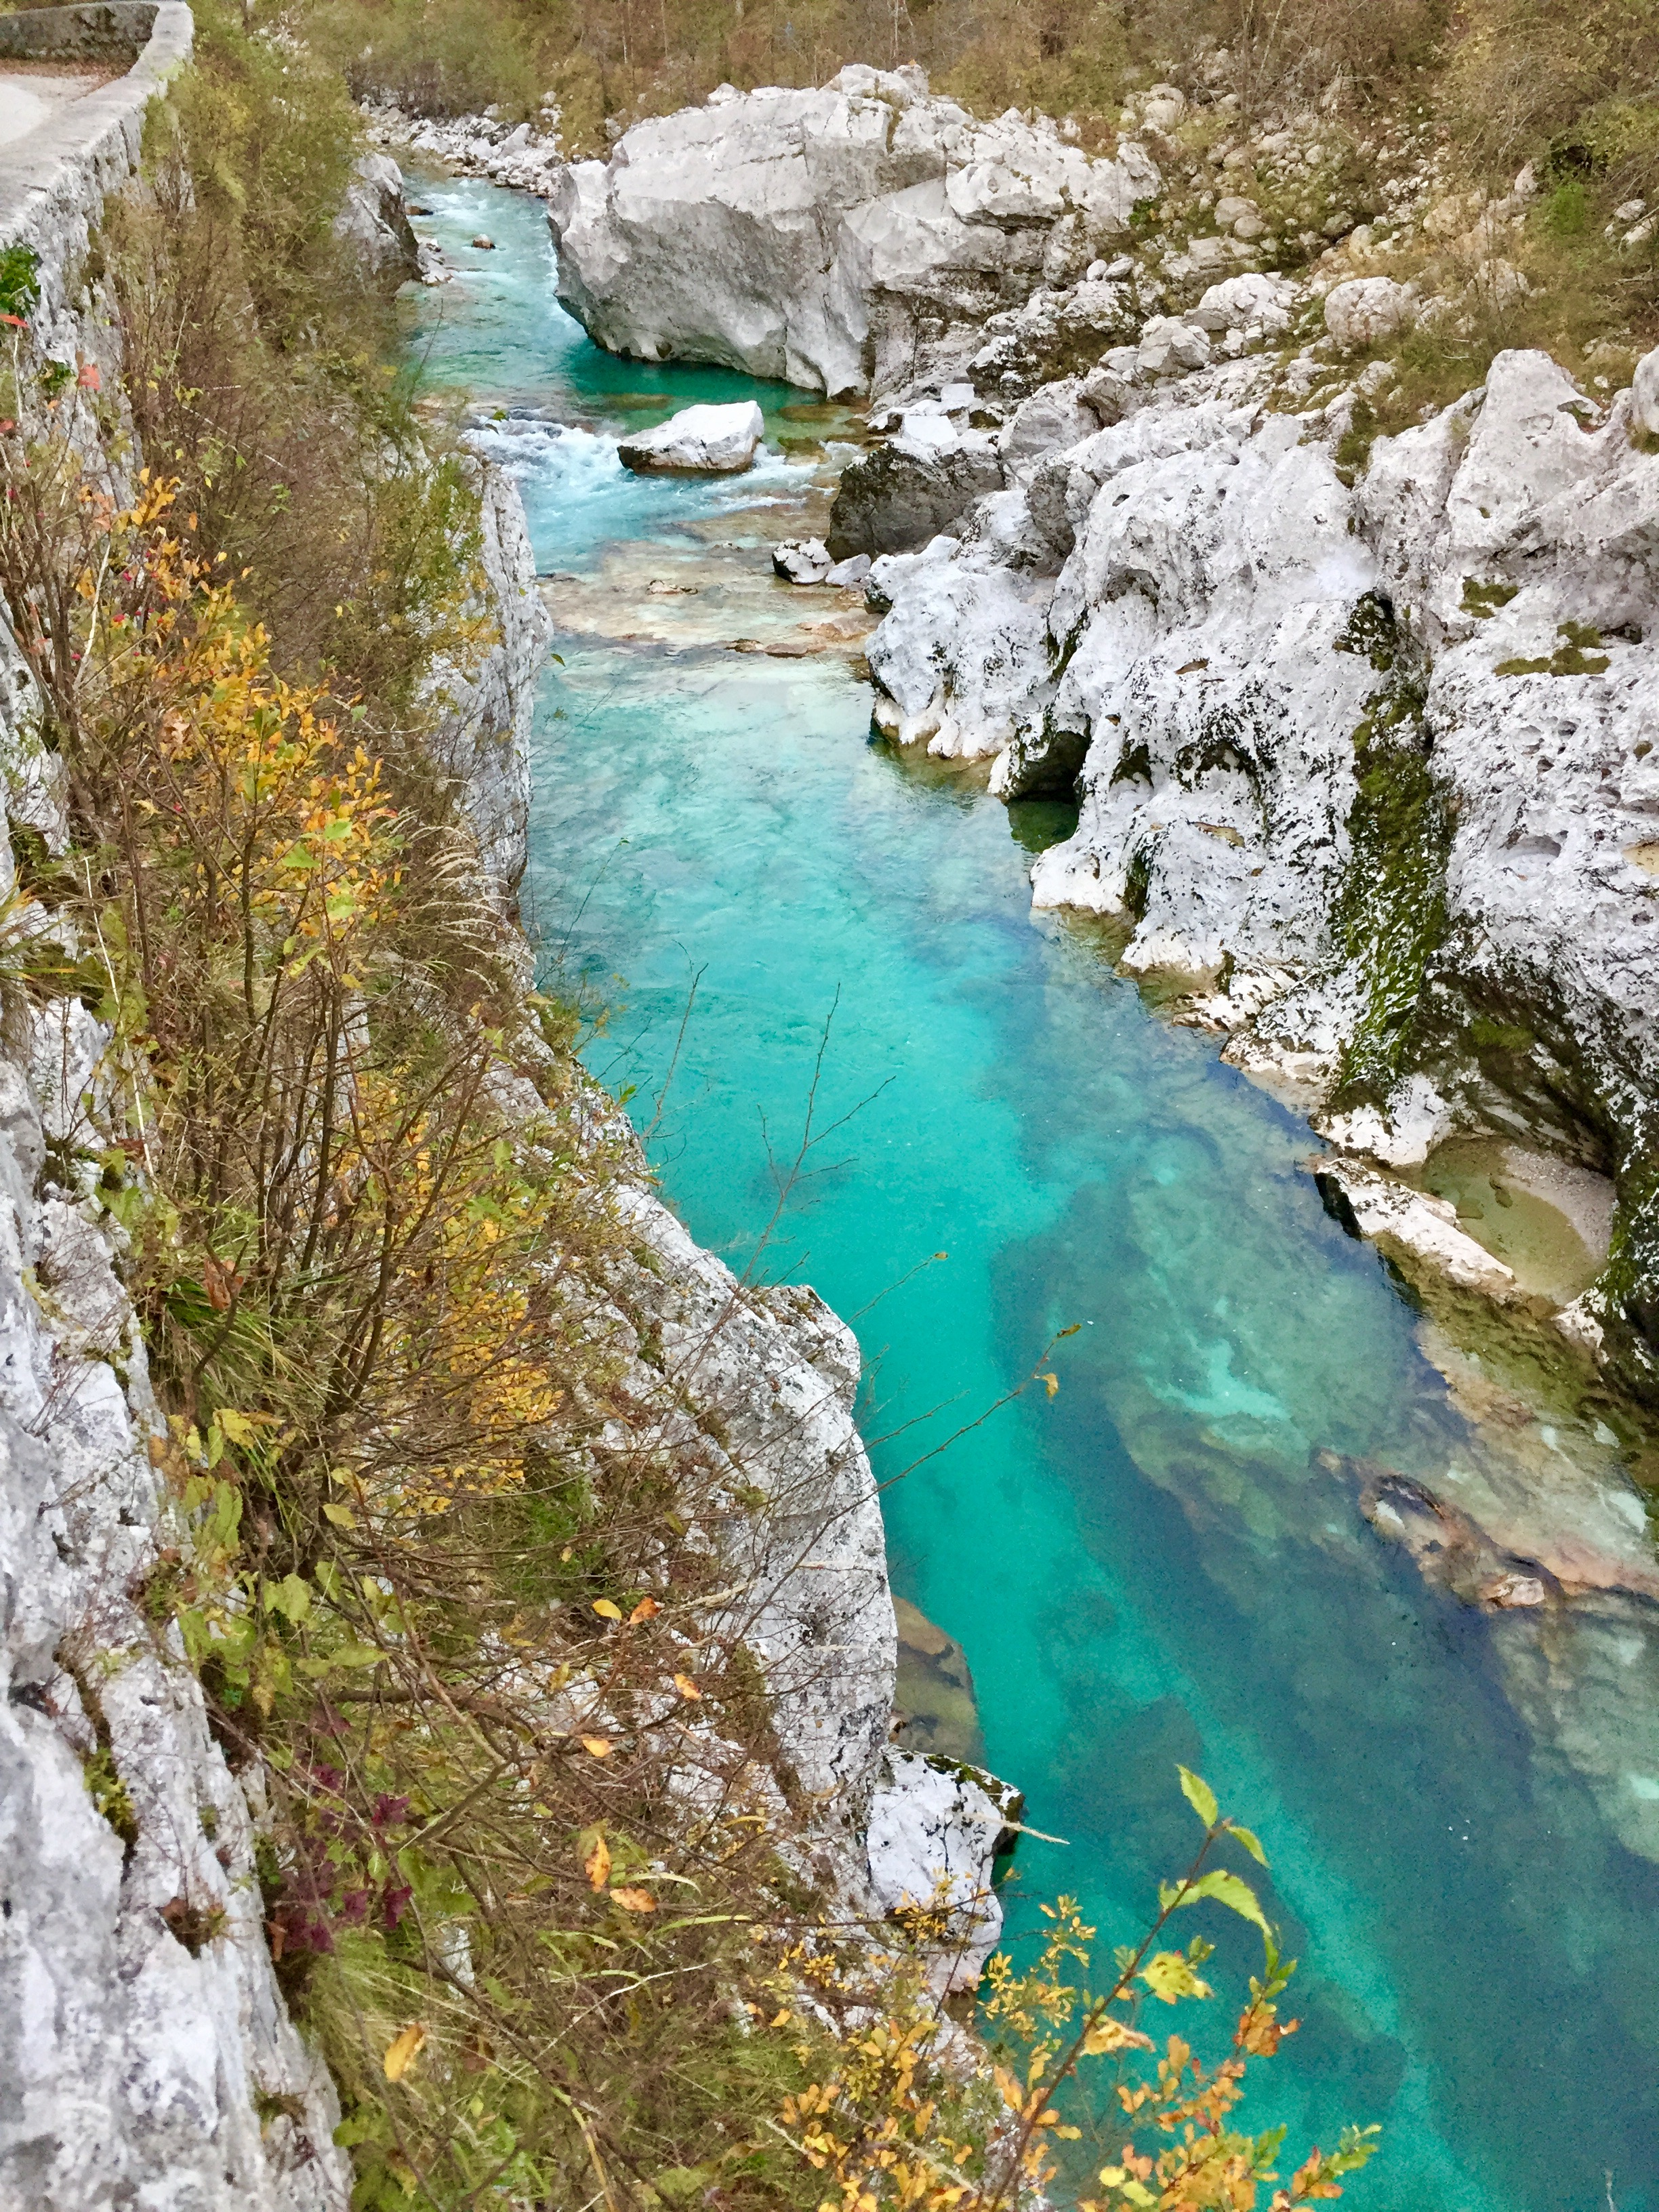 The Soča River is a vibrant blue-green